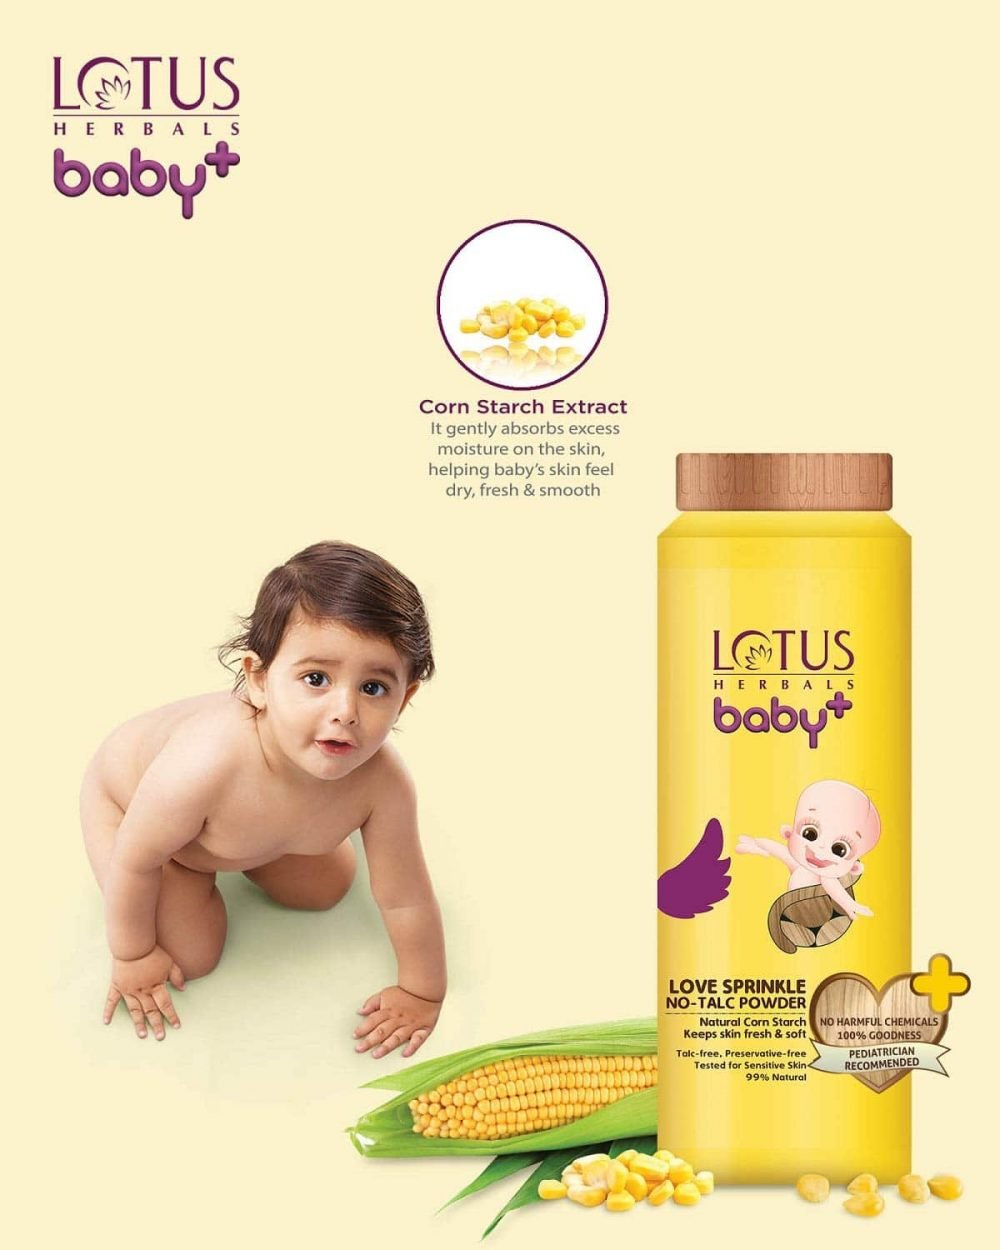 lotus herbals baby + love sprinkle no-talc powder 110g age 0-5